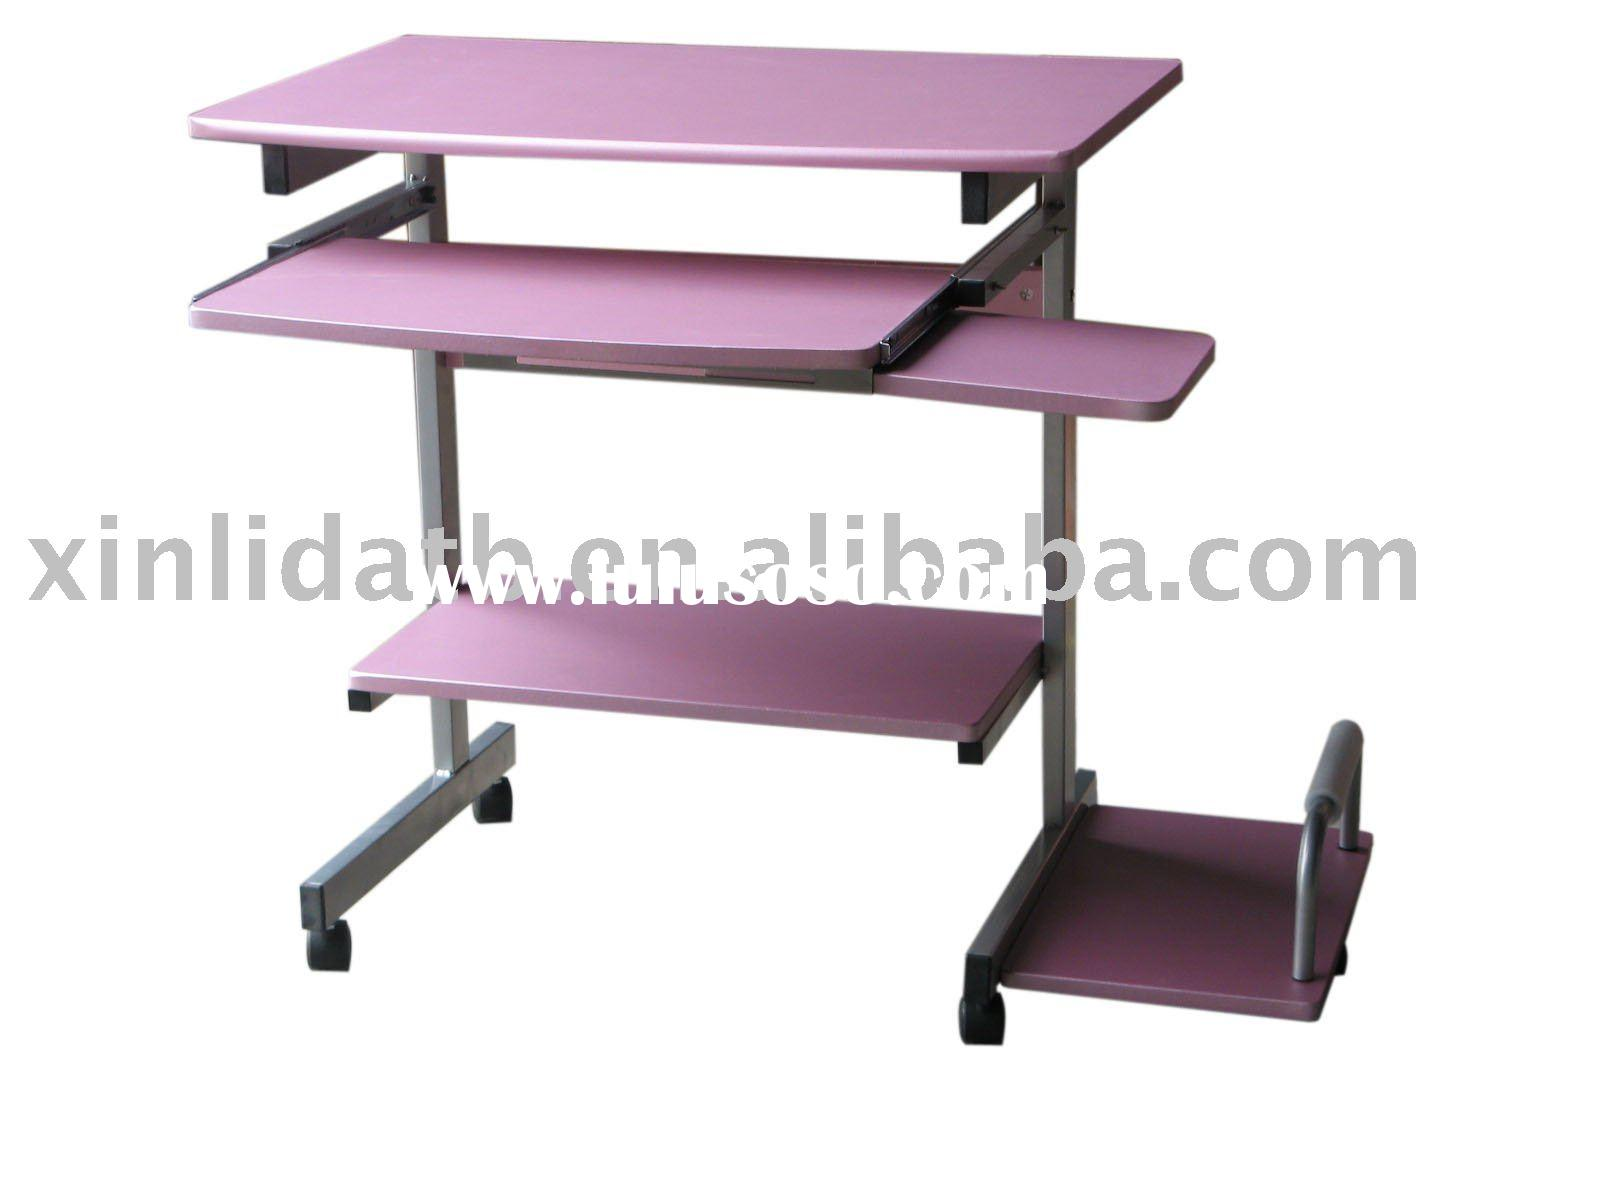 XD-715(Pink) Small Wood and metal movable Computer table